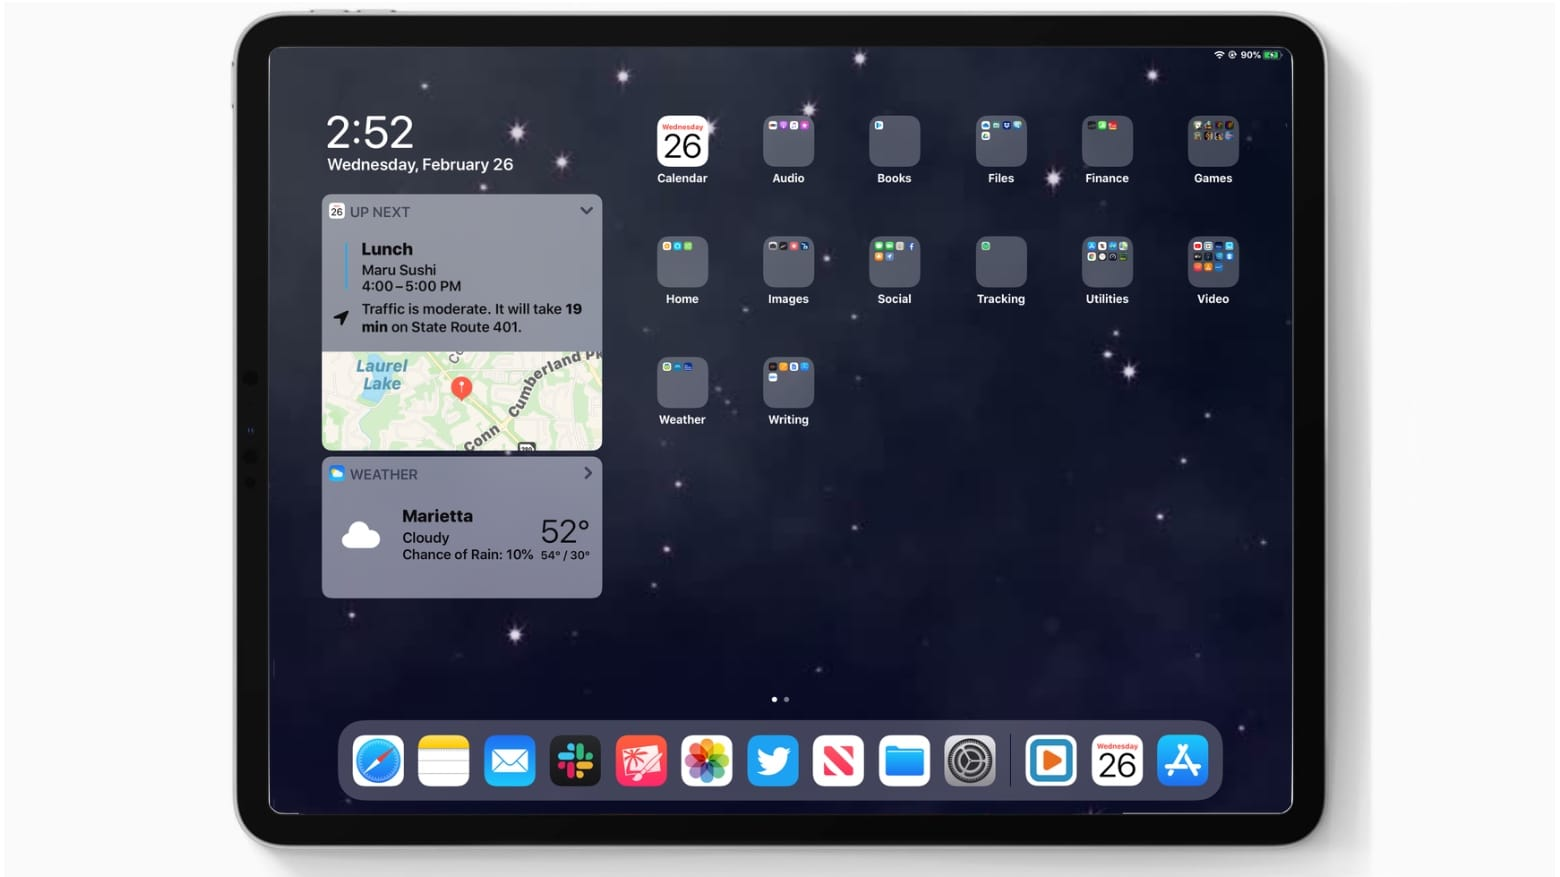 iPadOS 13.4 includes an improved Up Next home screen widget.